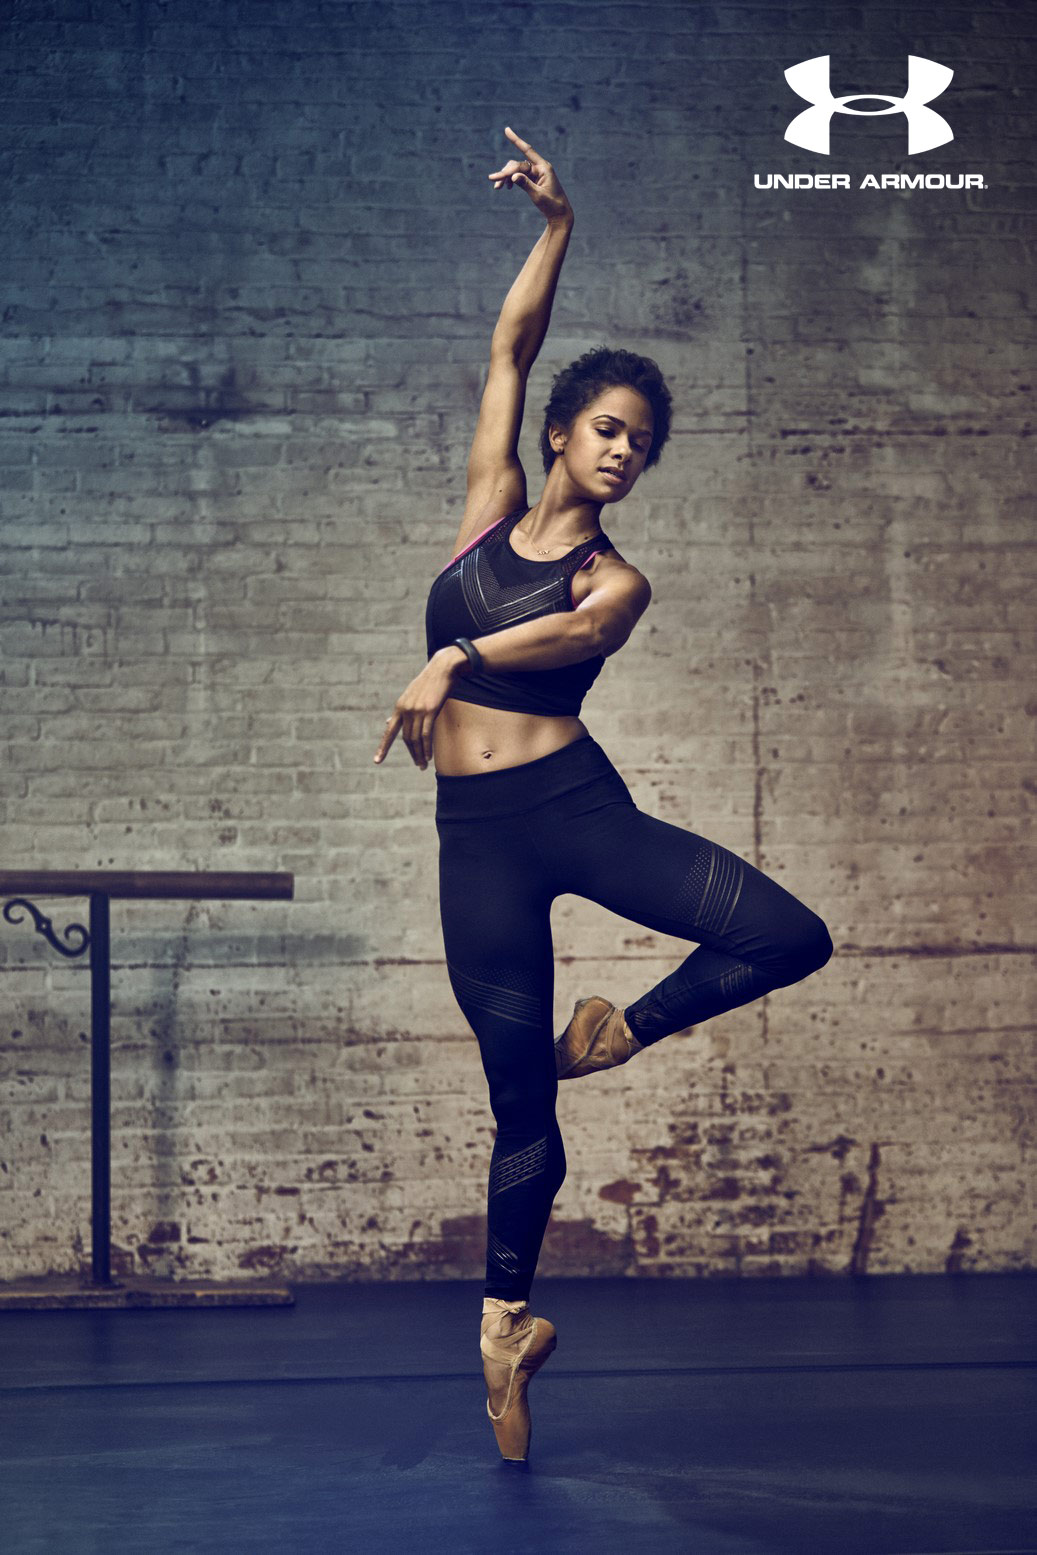 Misty Copeland Twarzą Under Armour 2017 Butyjana Pl